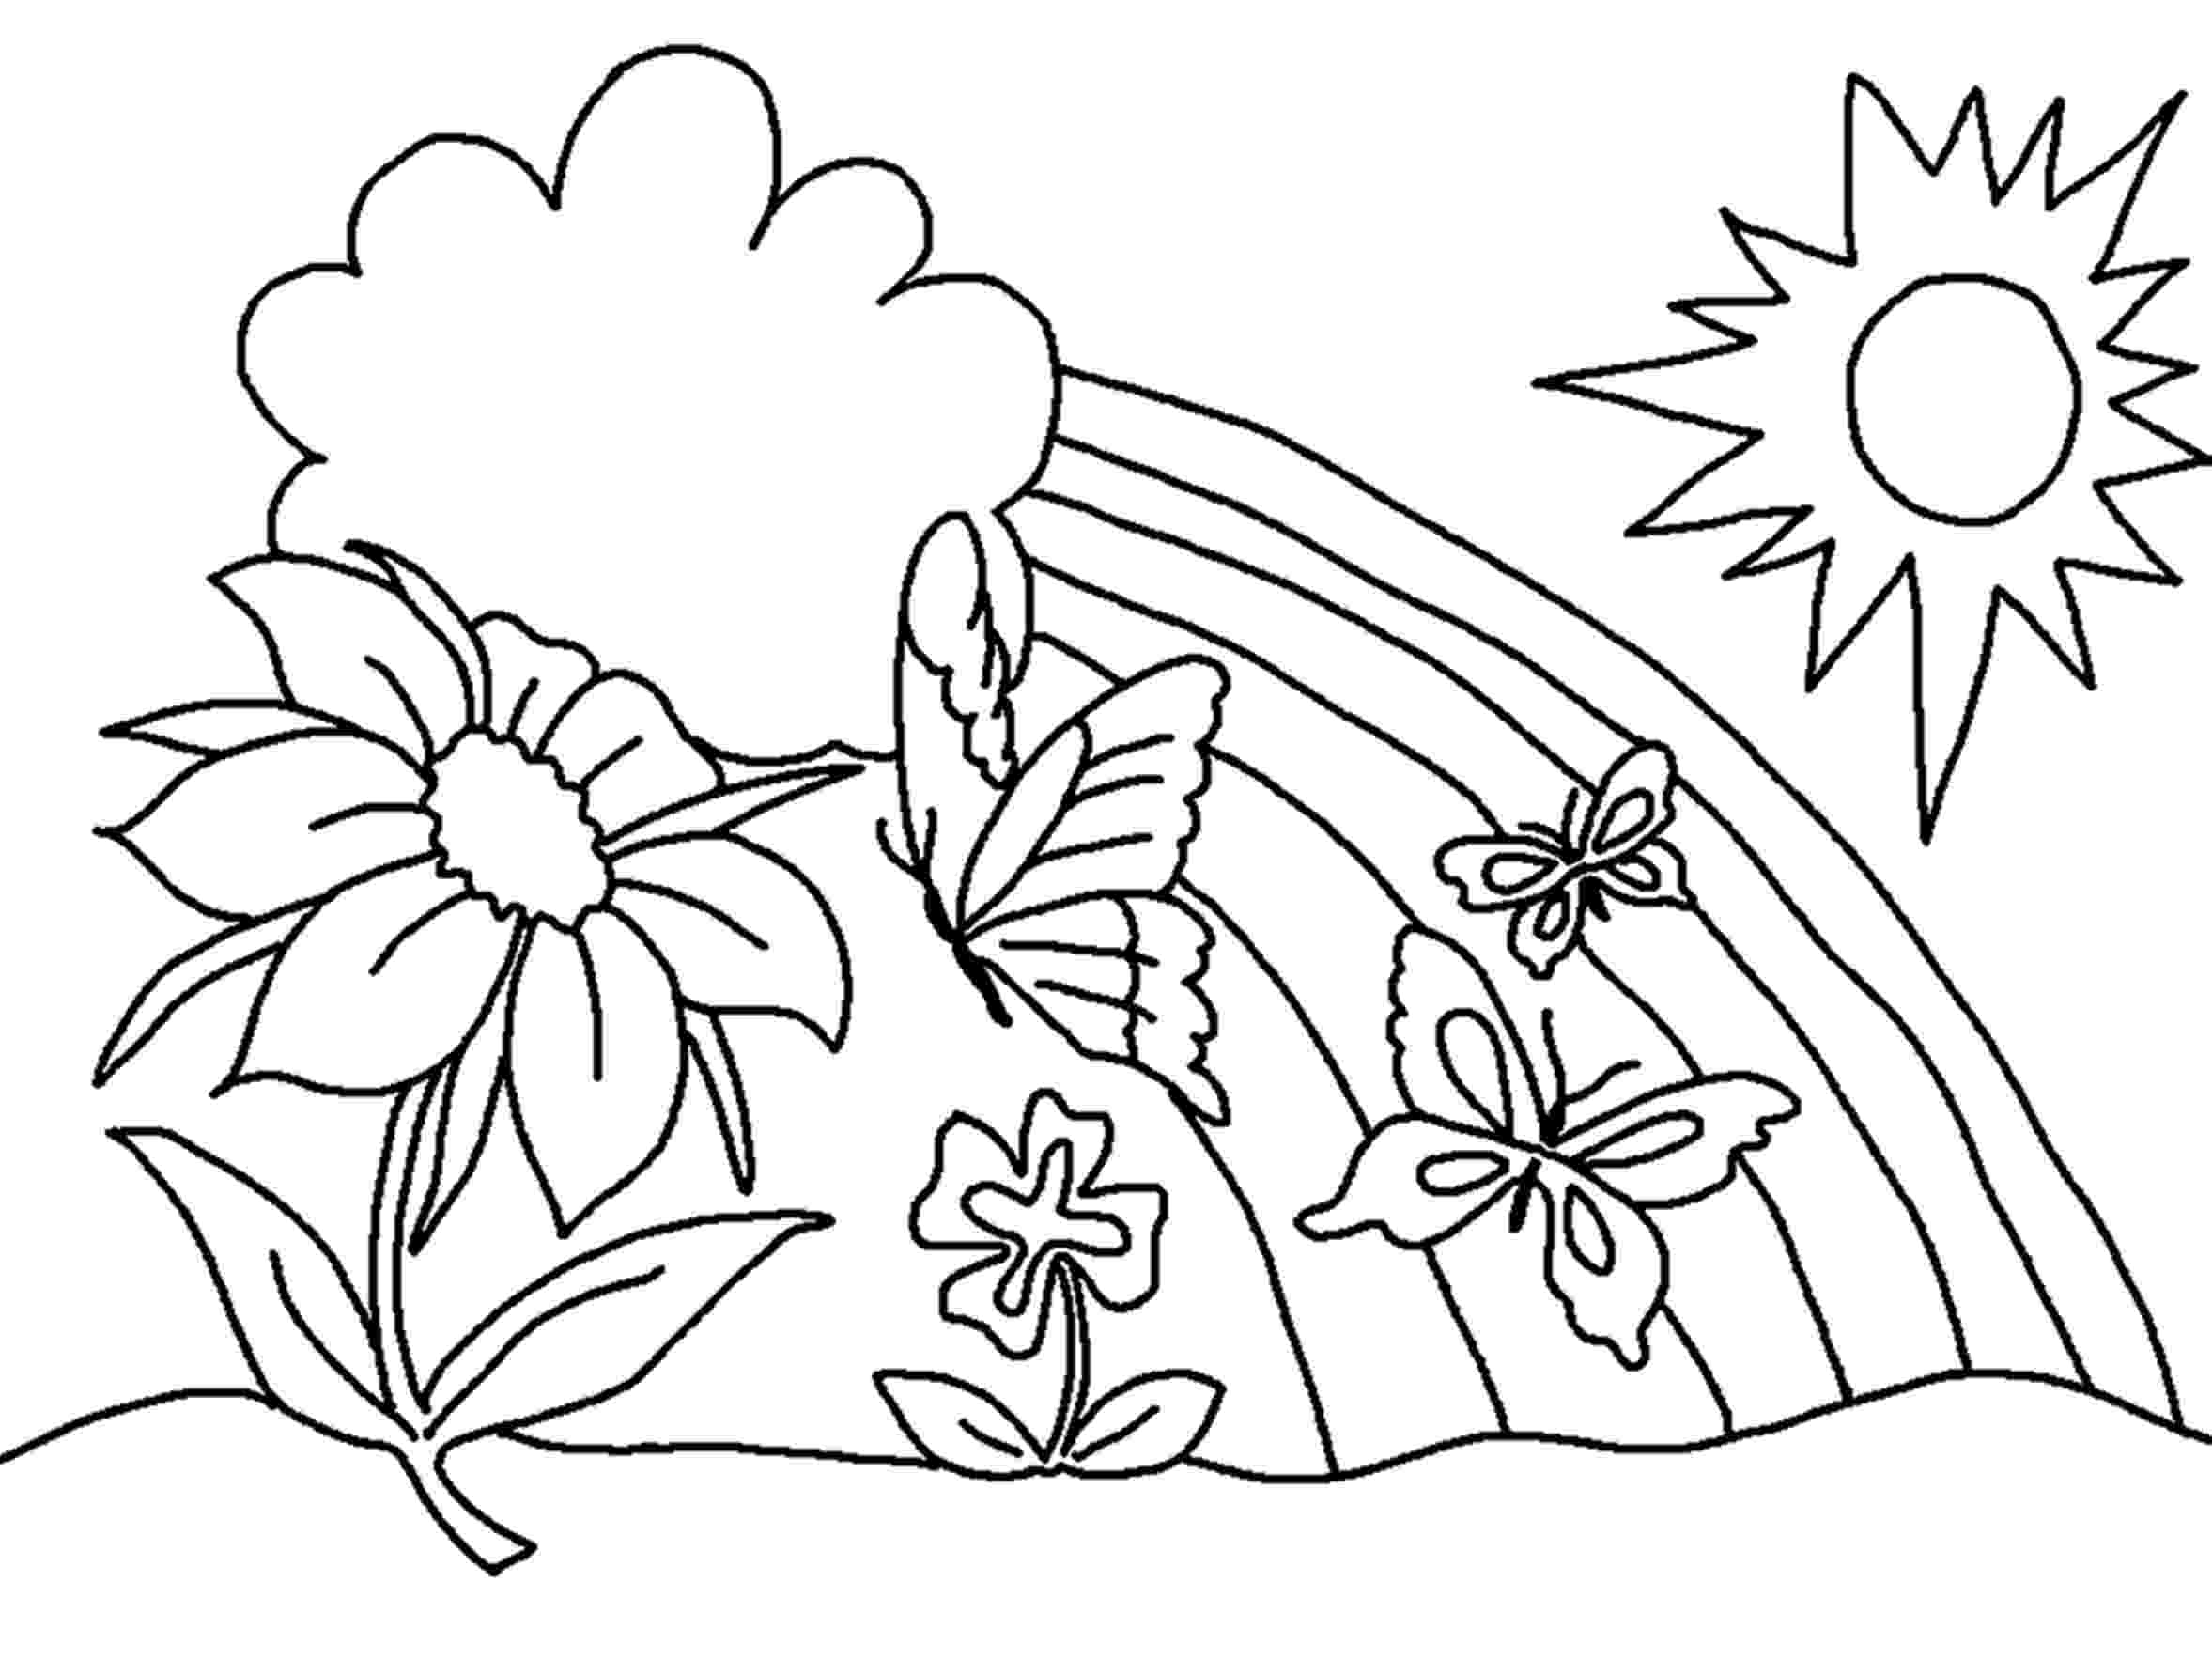 flower colouring pages to print flowers pictures elegant free flower coloring pages for kids to print flower colouring pages